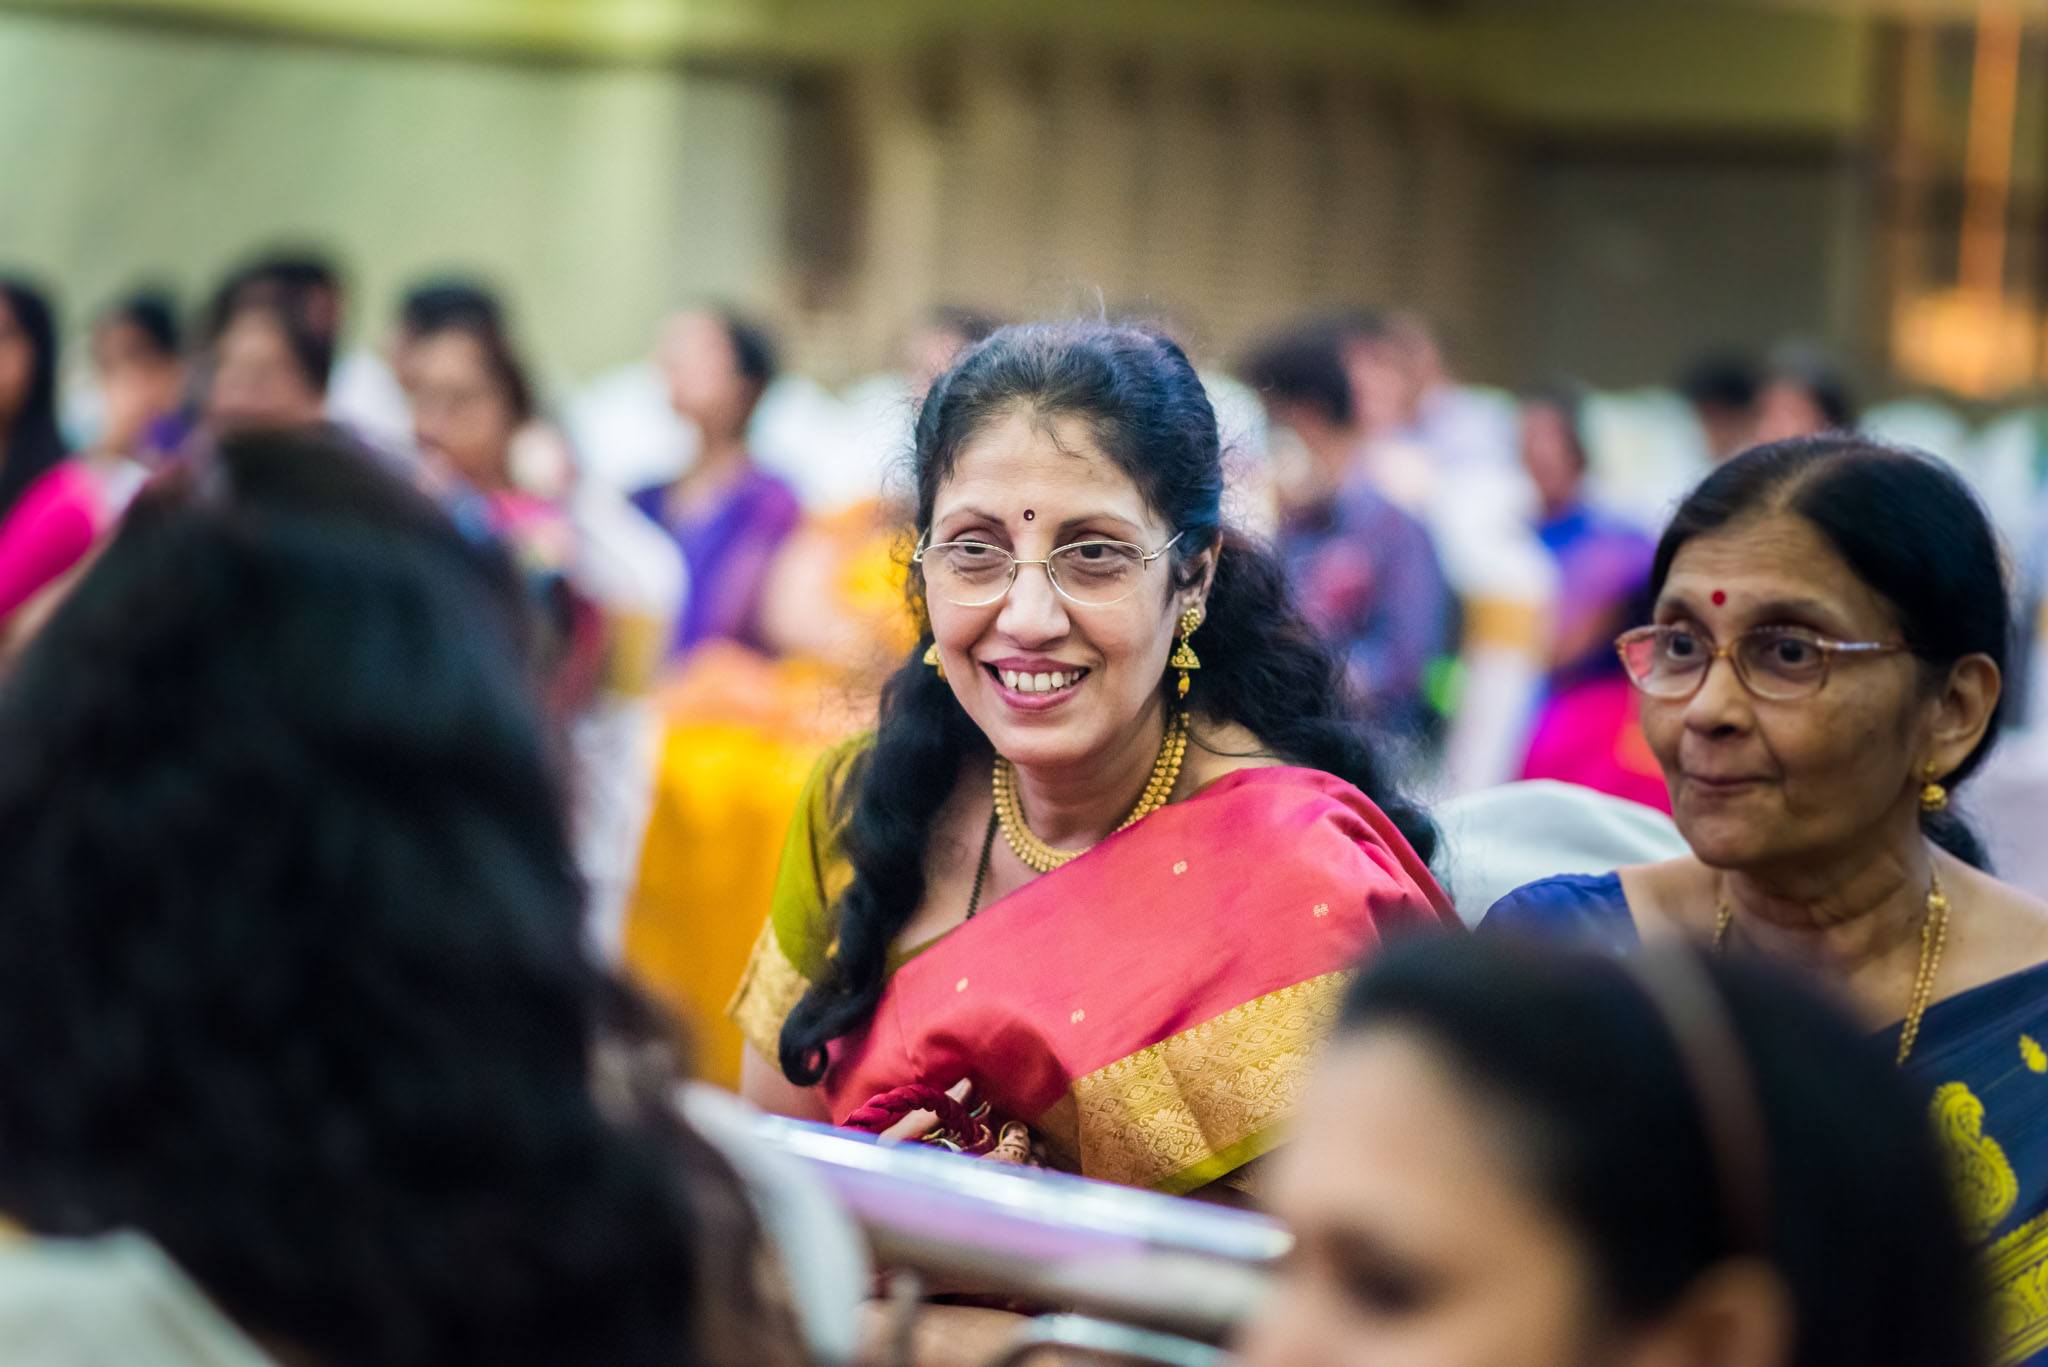 WhatKnot-Candid-Wedding-Photography-Mumbai-Bangalore-233